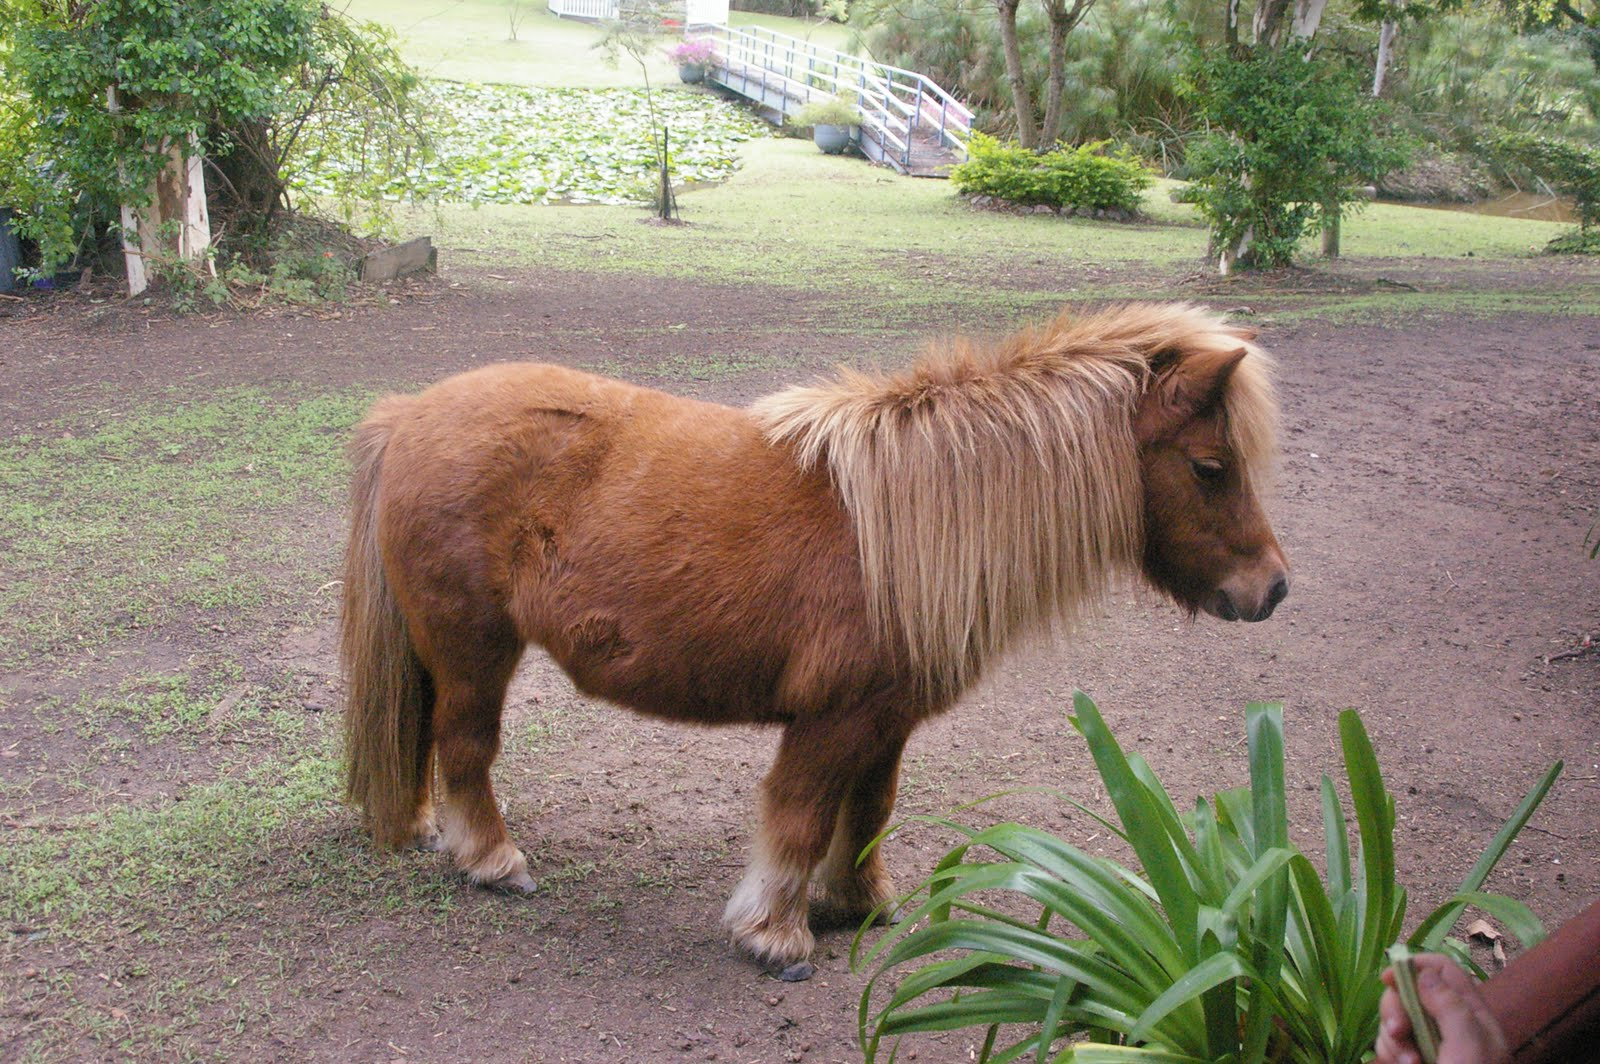 Horse Breeding Human Female http://domesblissity.blogspot.com/2011/05/mini-mates-miniature-horse-farm.html